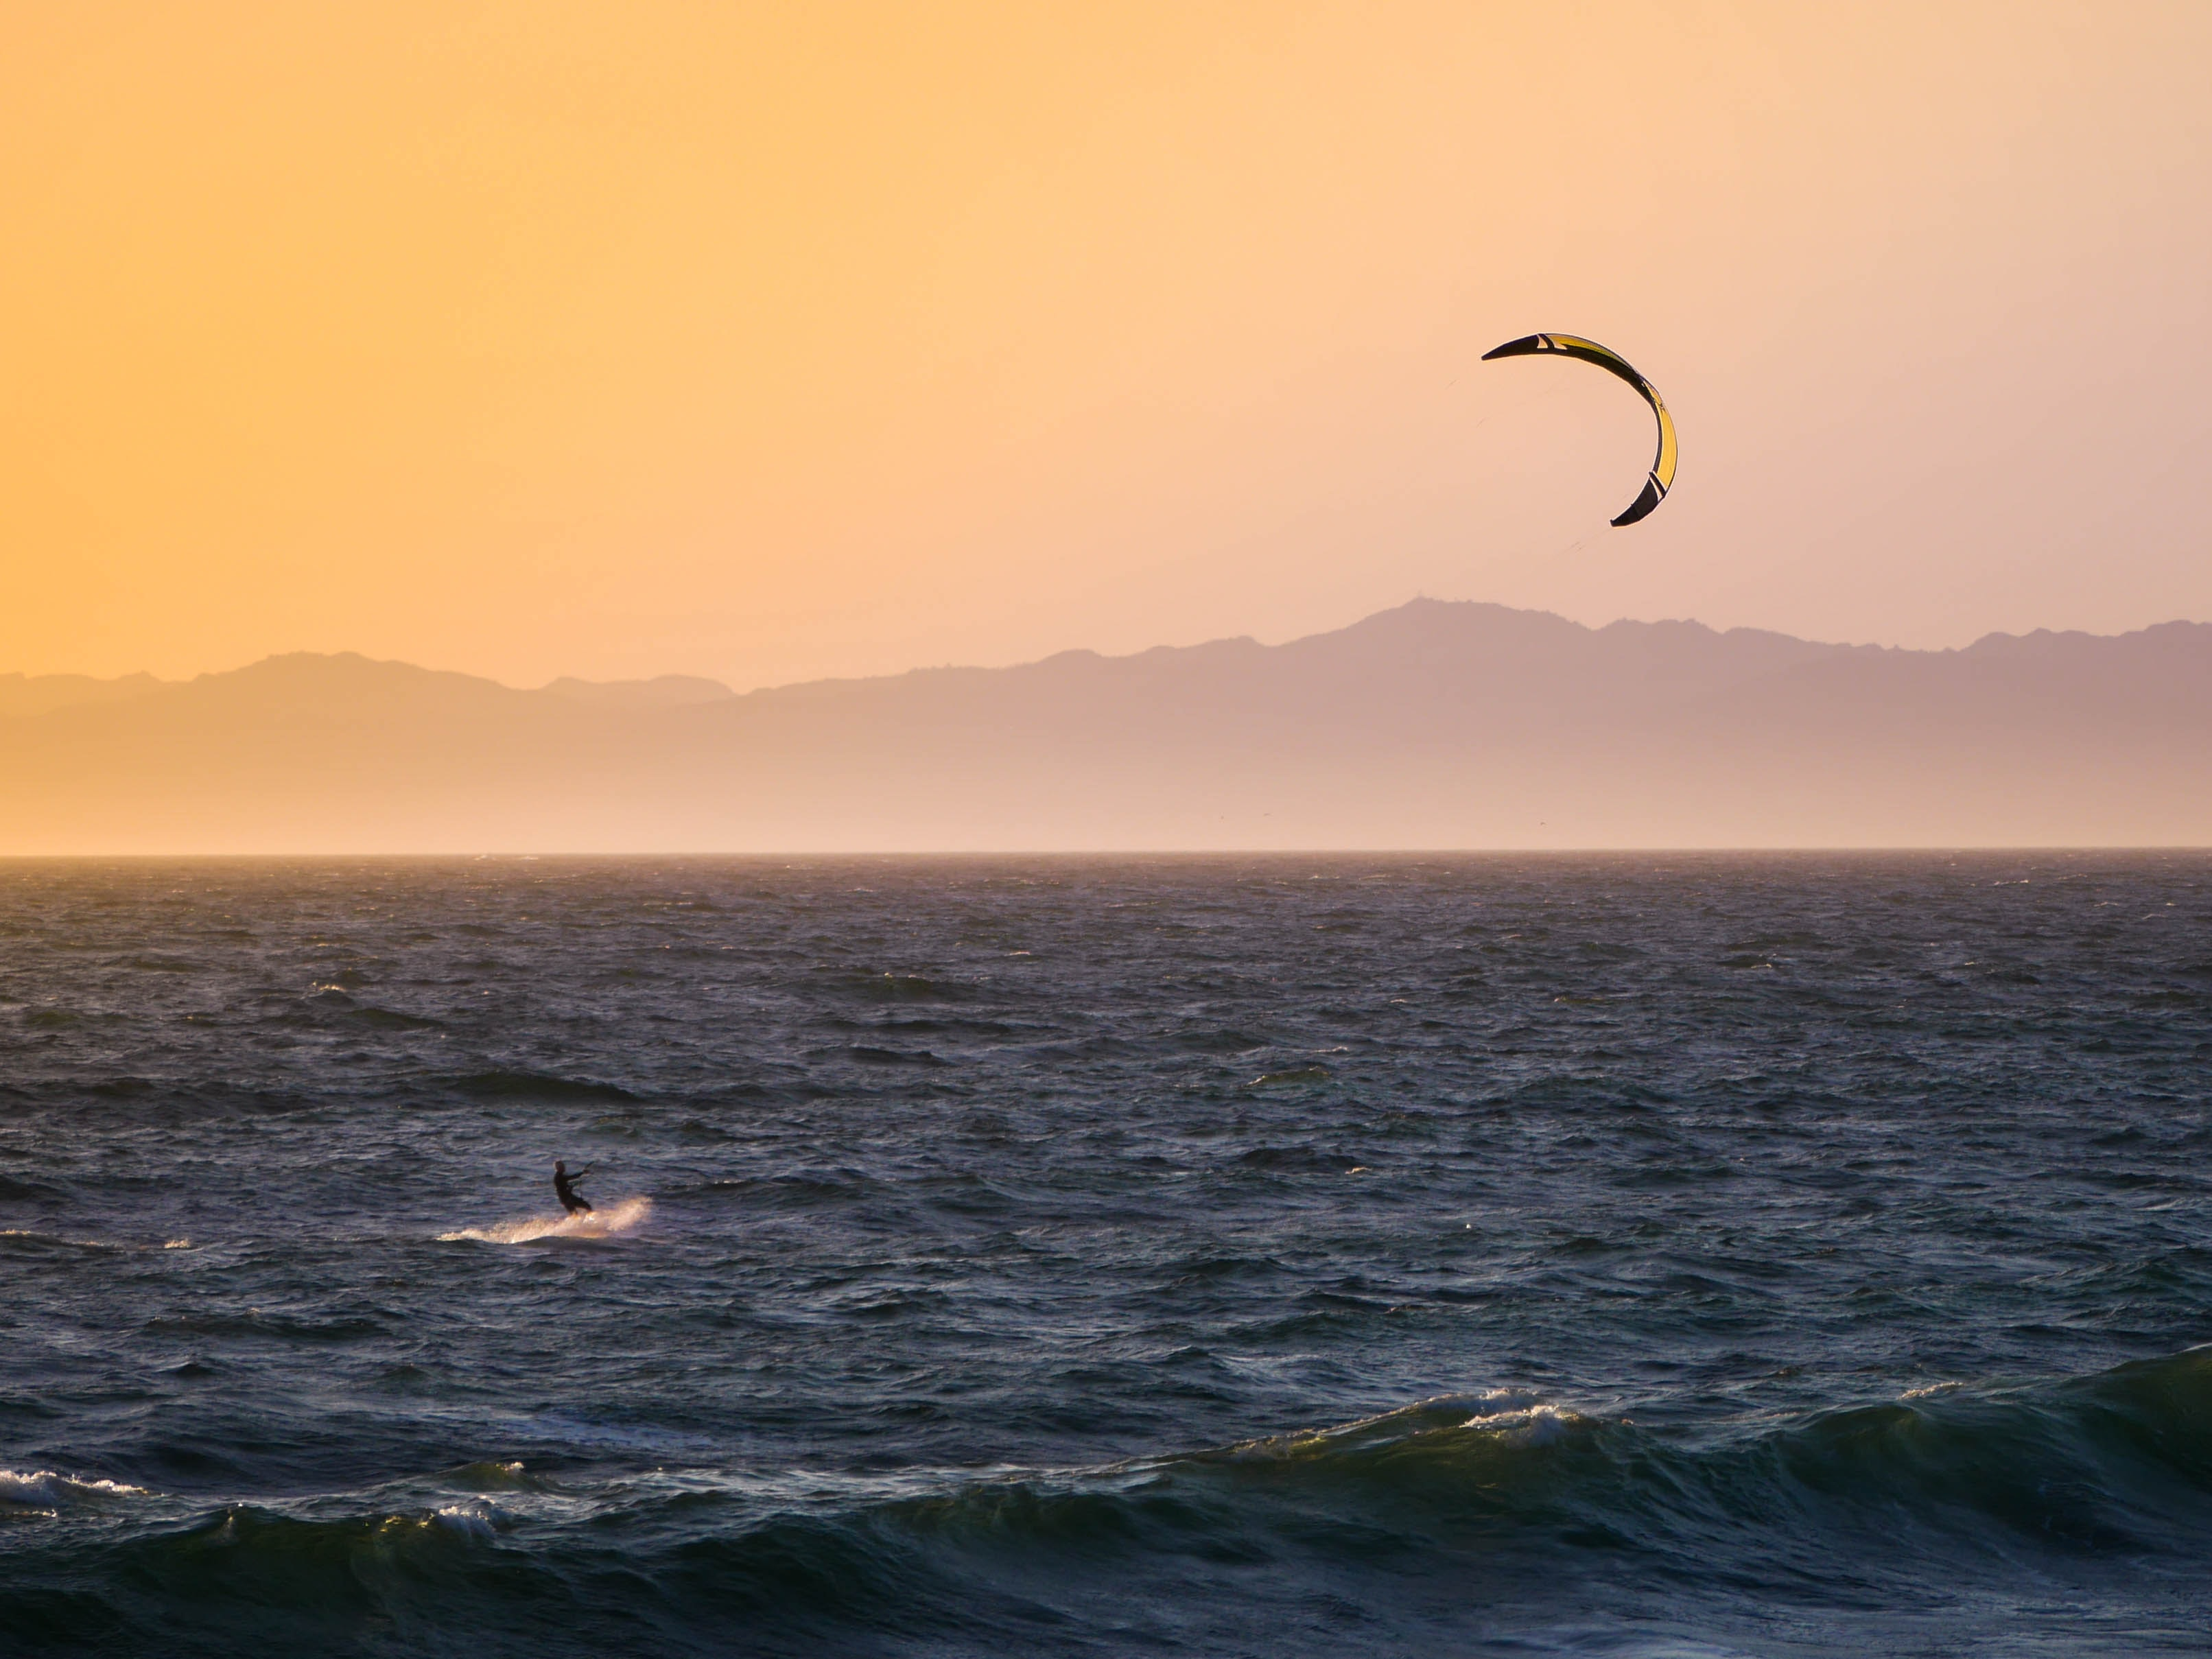 kitesurfing during golden hour